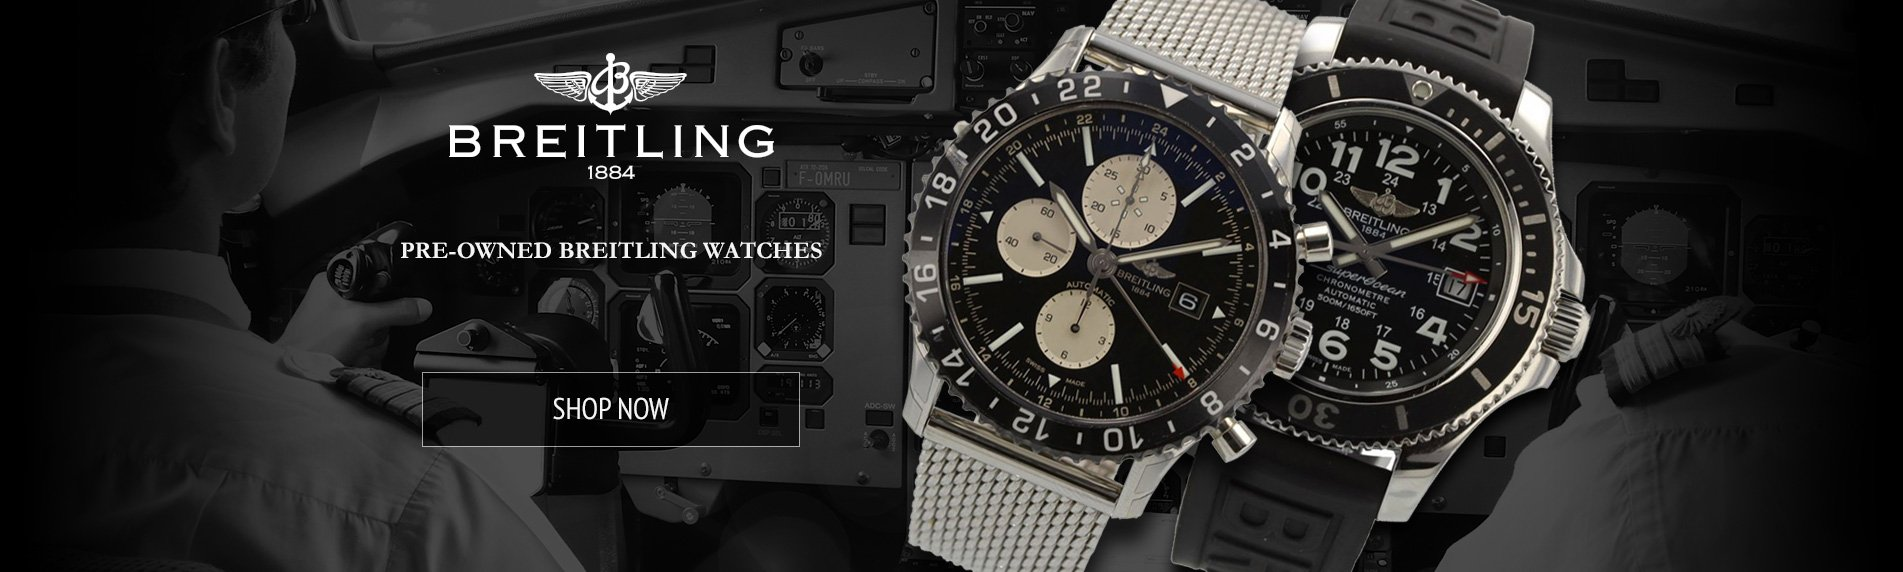 Buy and Sell Pre-owned Breitling Watches